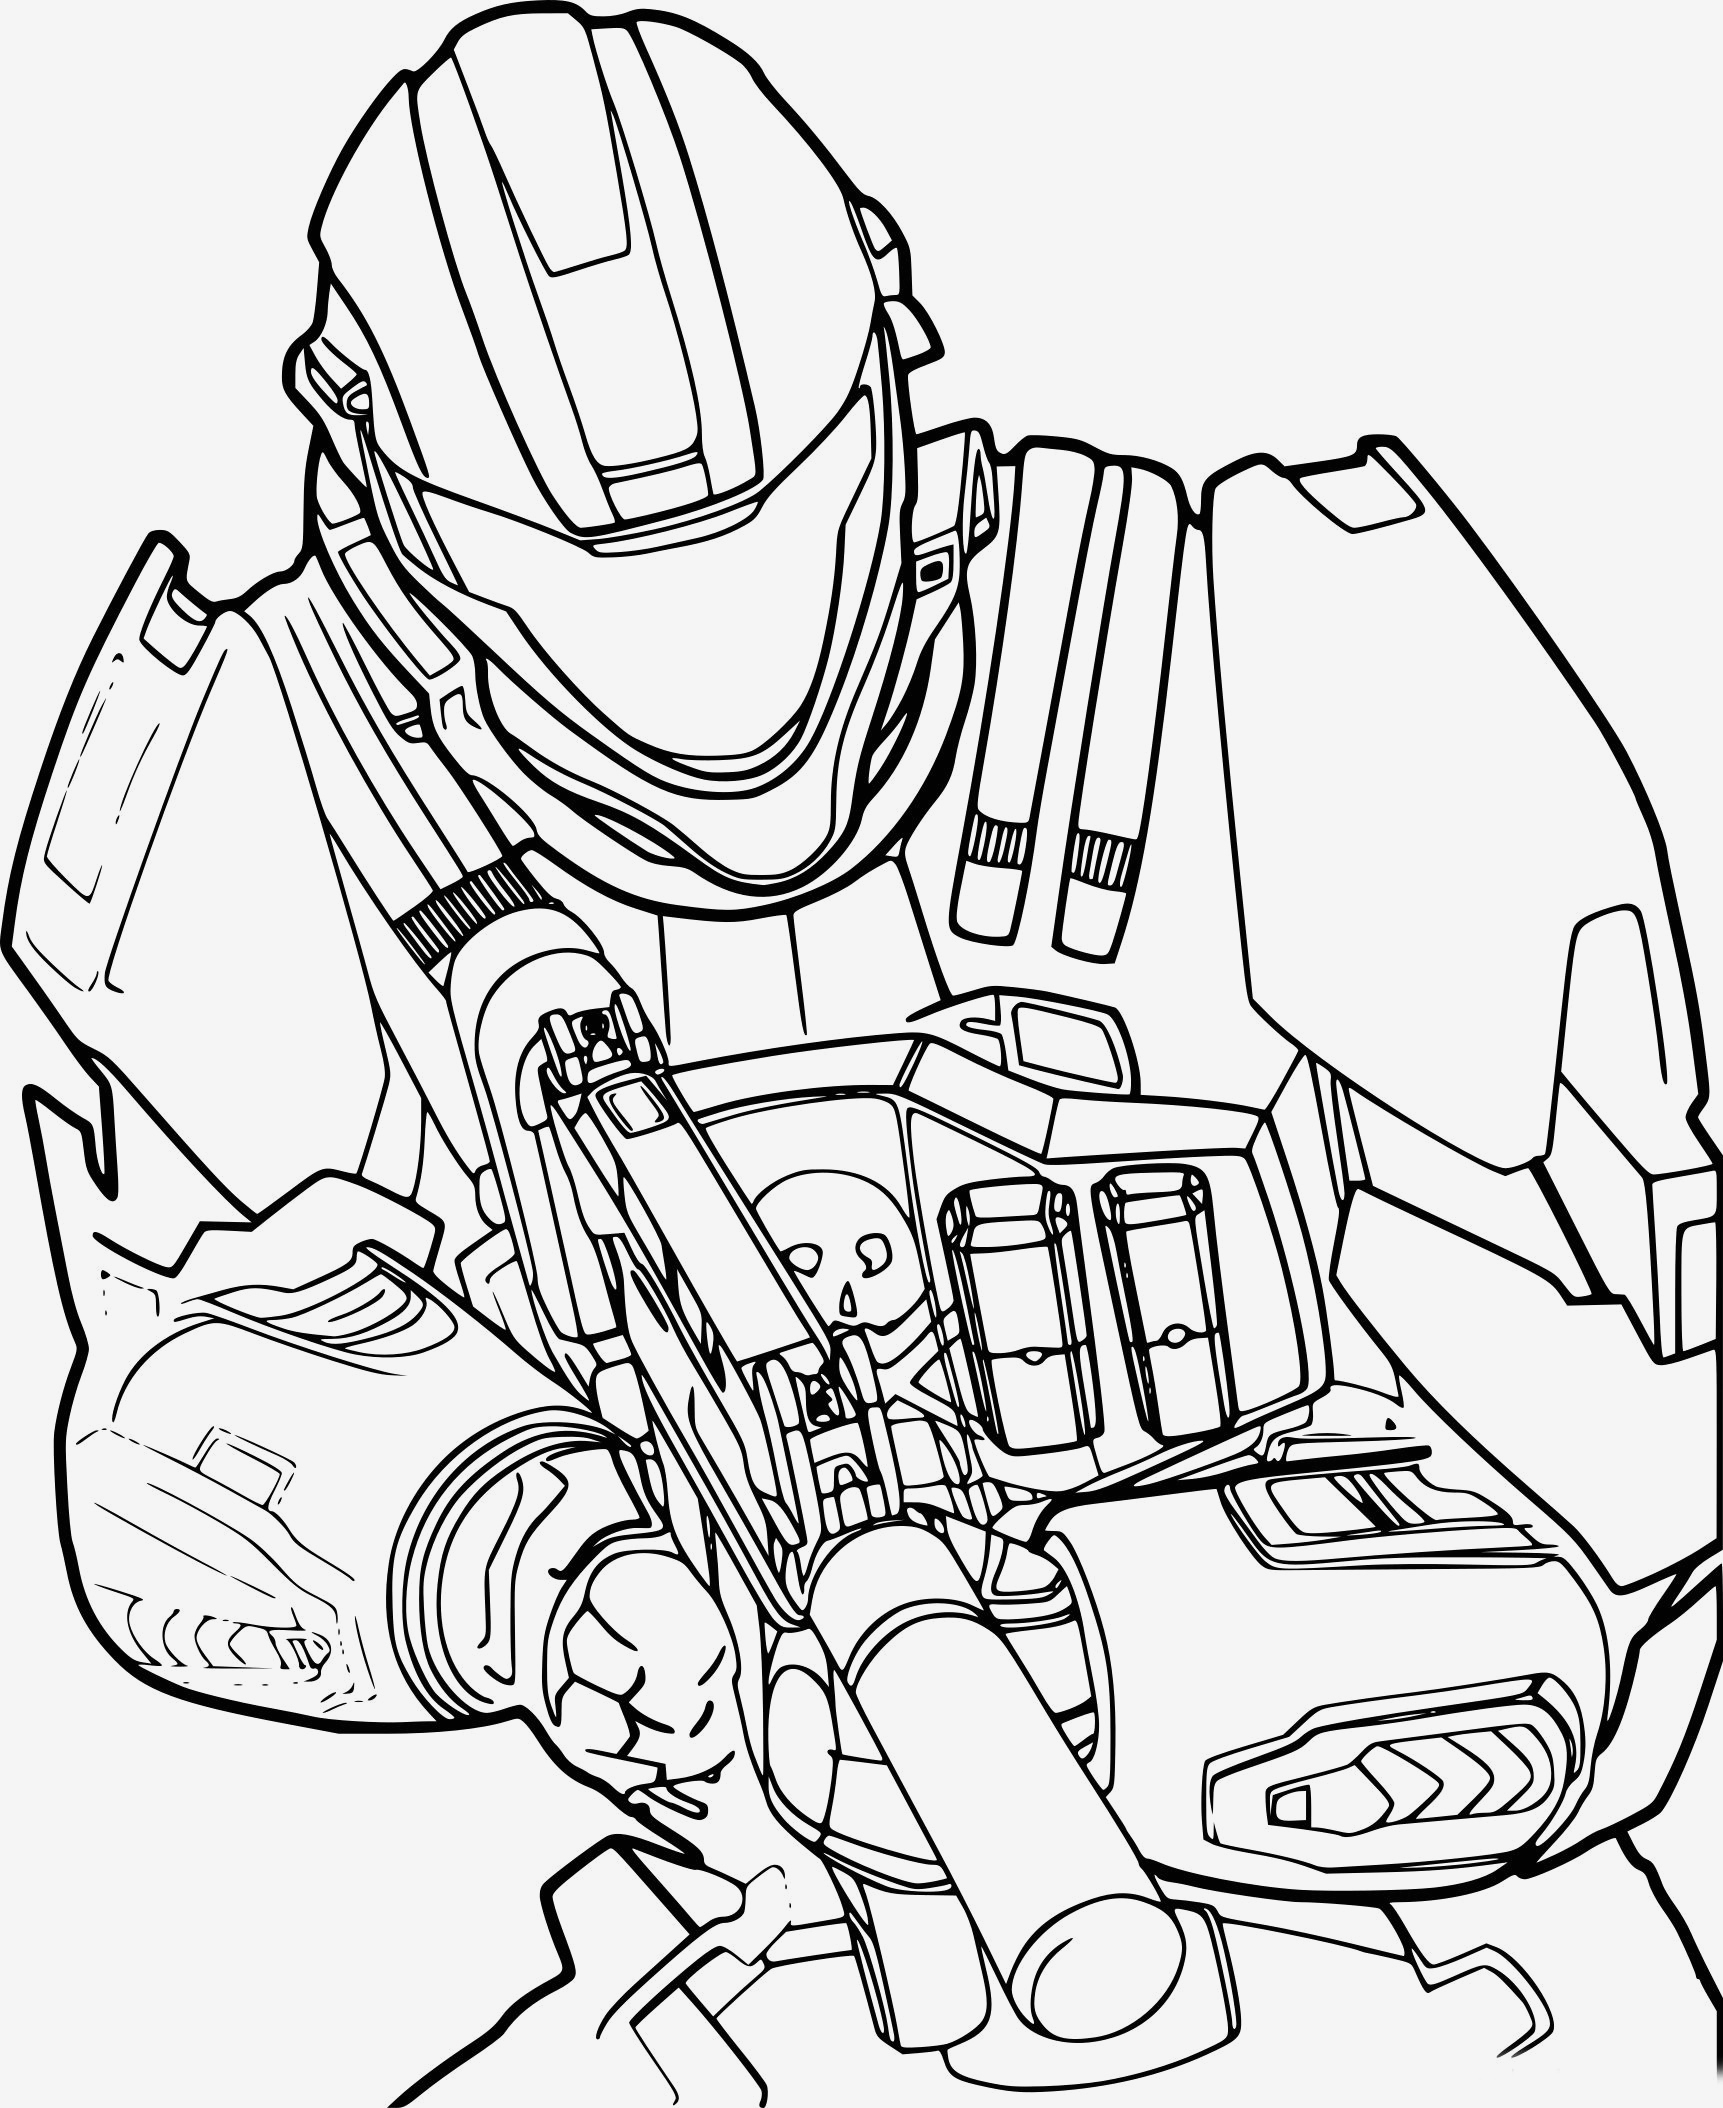 Halo Coloring Pages  Download 5d - Save it to your computer